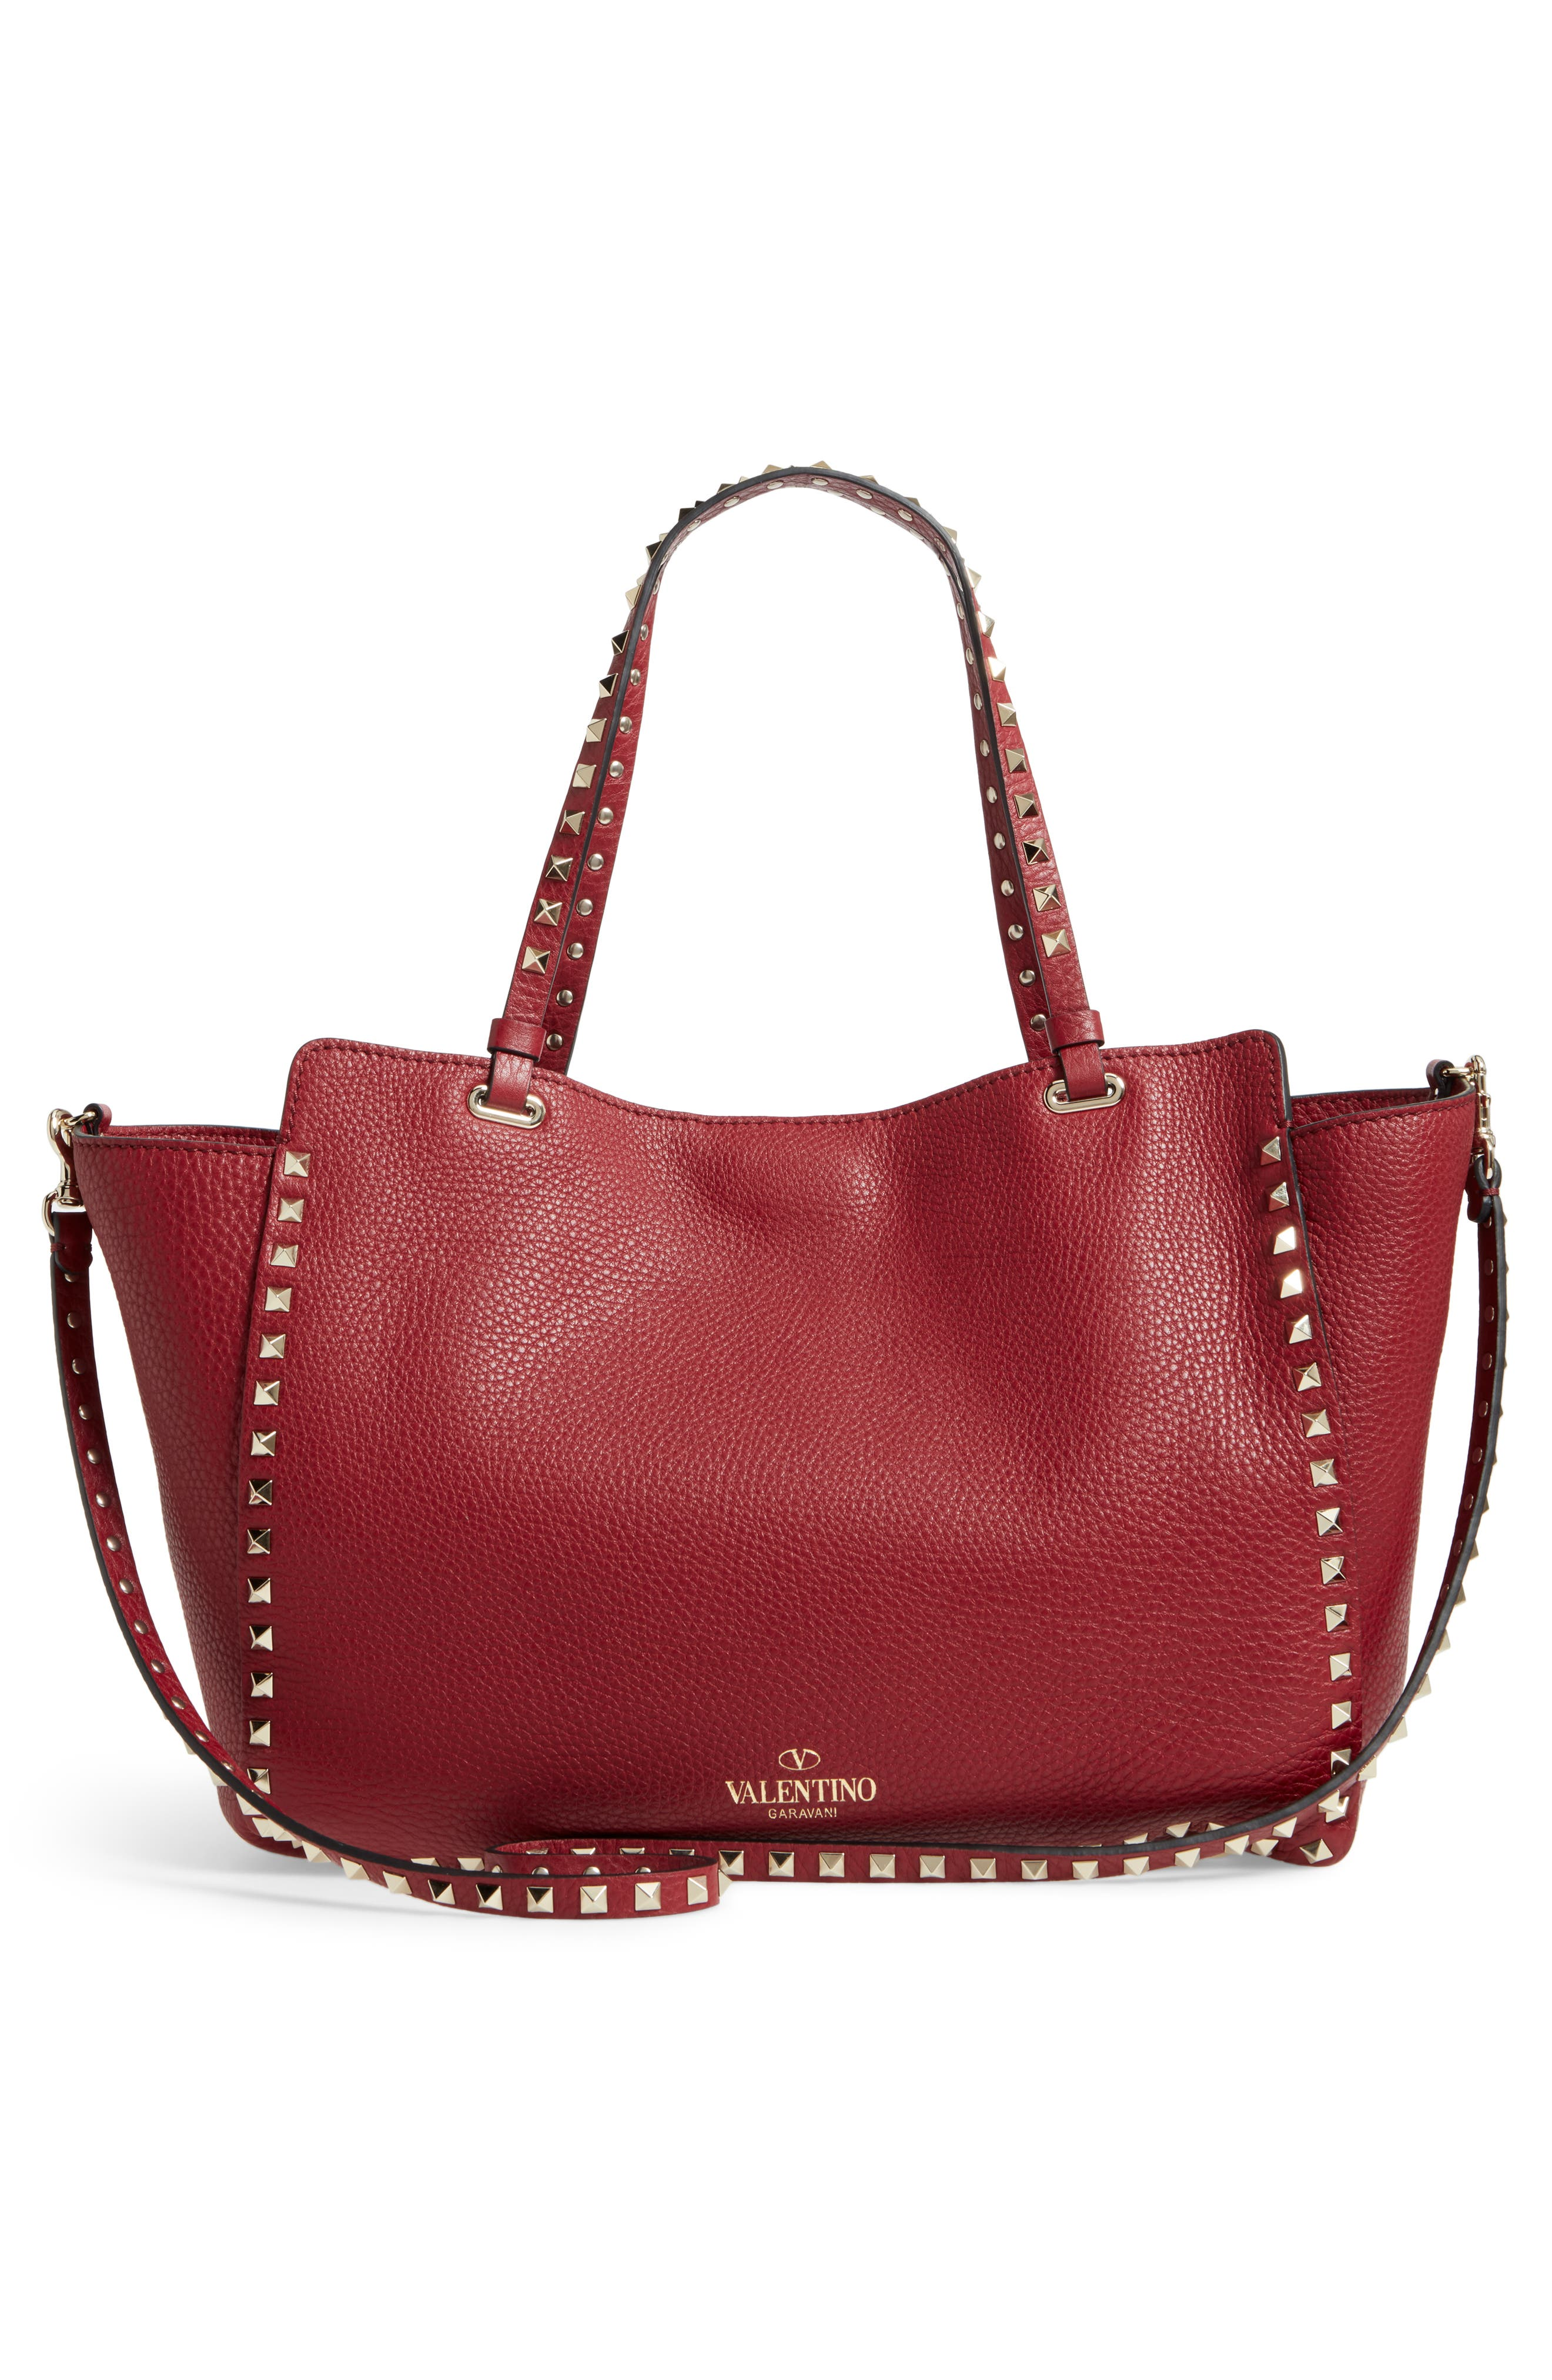 Medium Rockstud Grained Calfskin Leather Tote,                             Alternate thumbnail 3, color,                             930